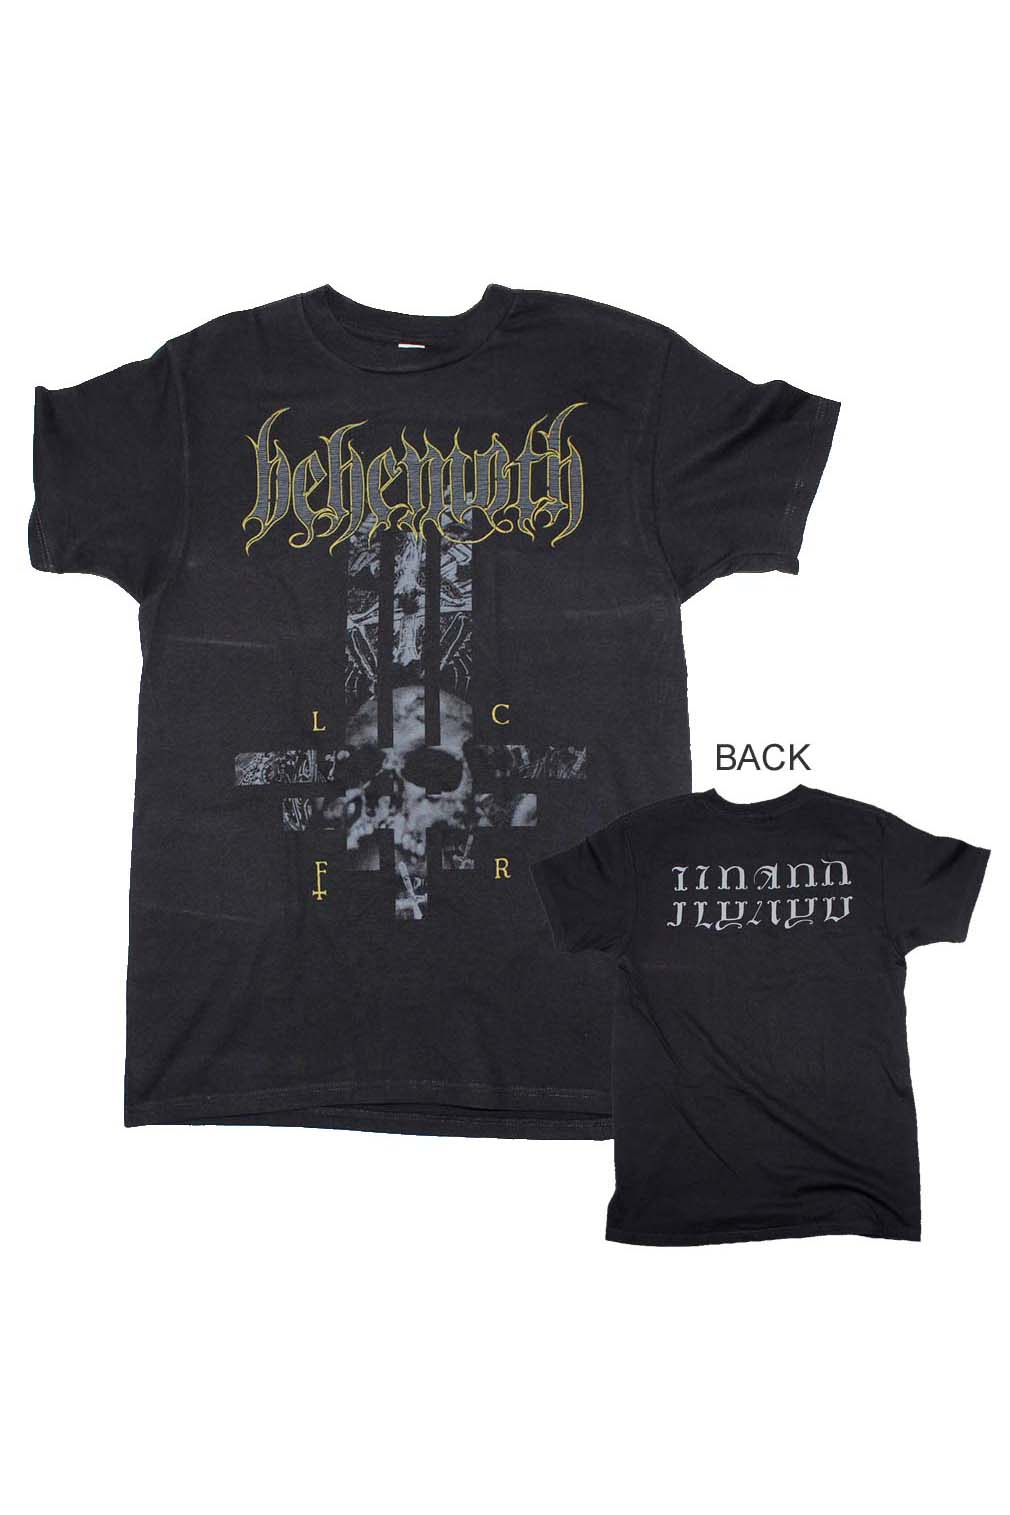 Behemoth LCFR Cross T-Shirt